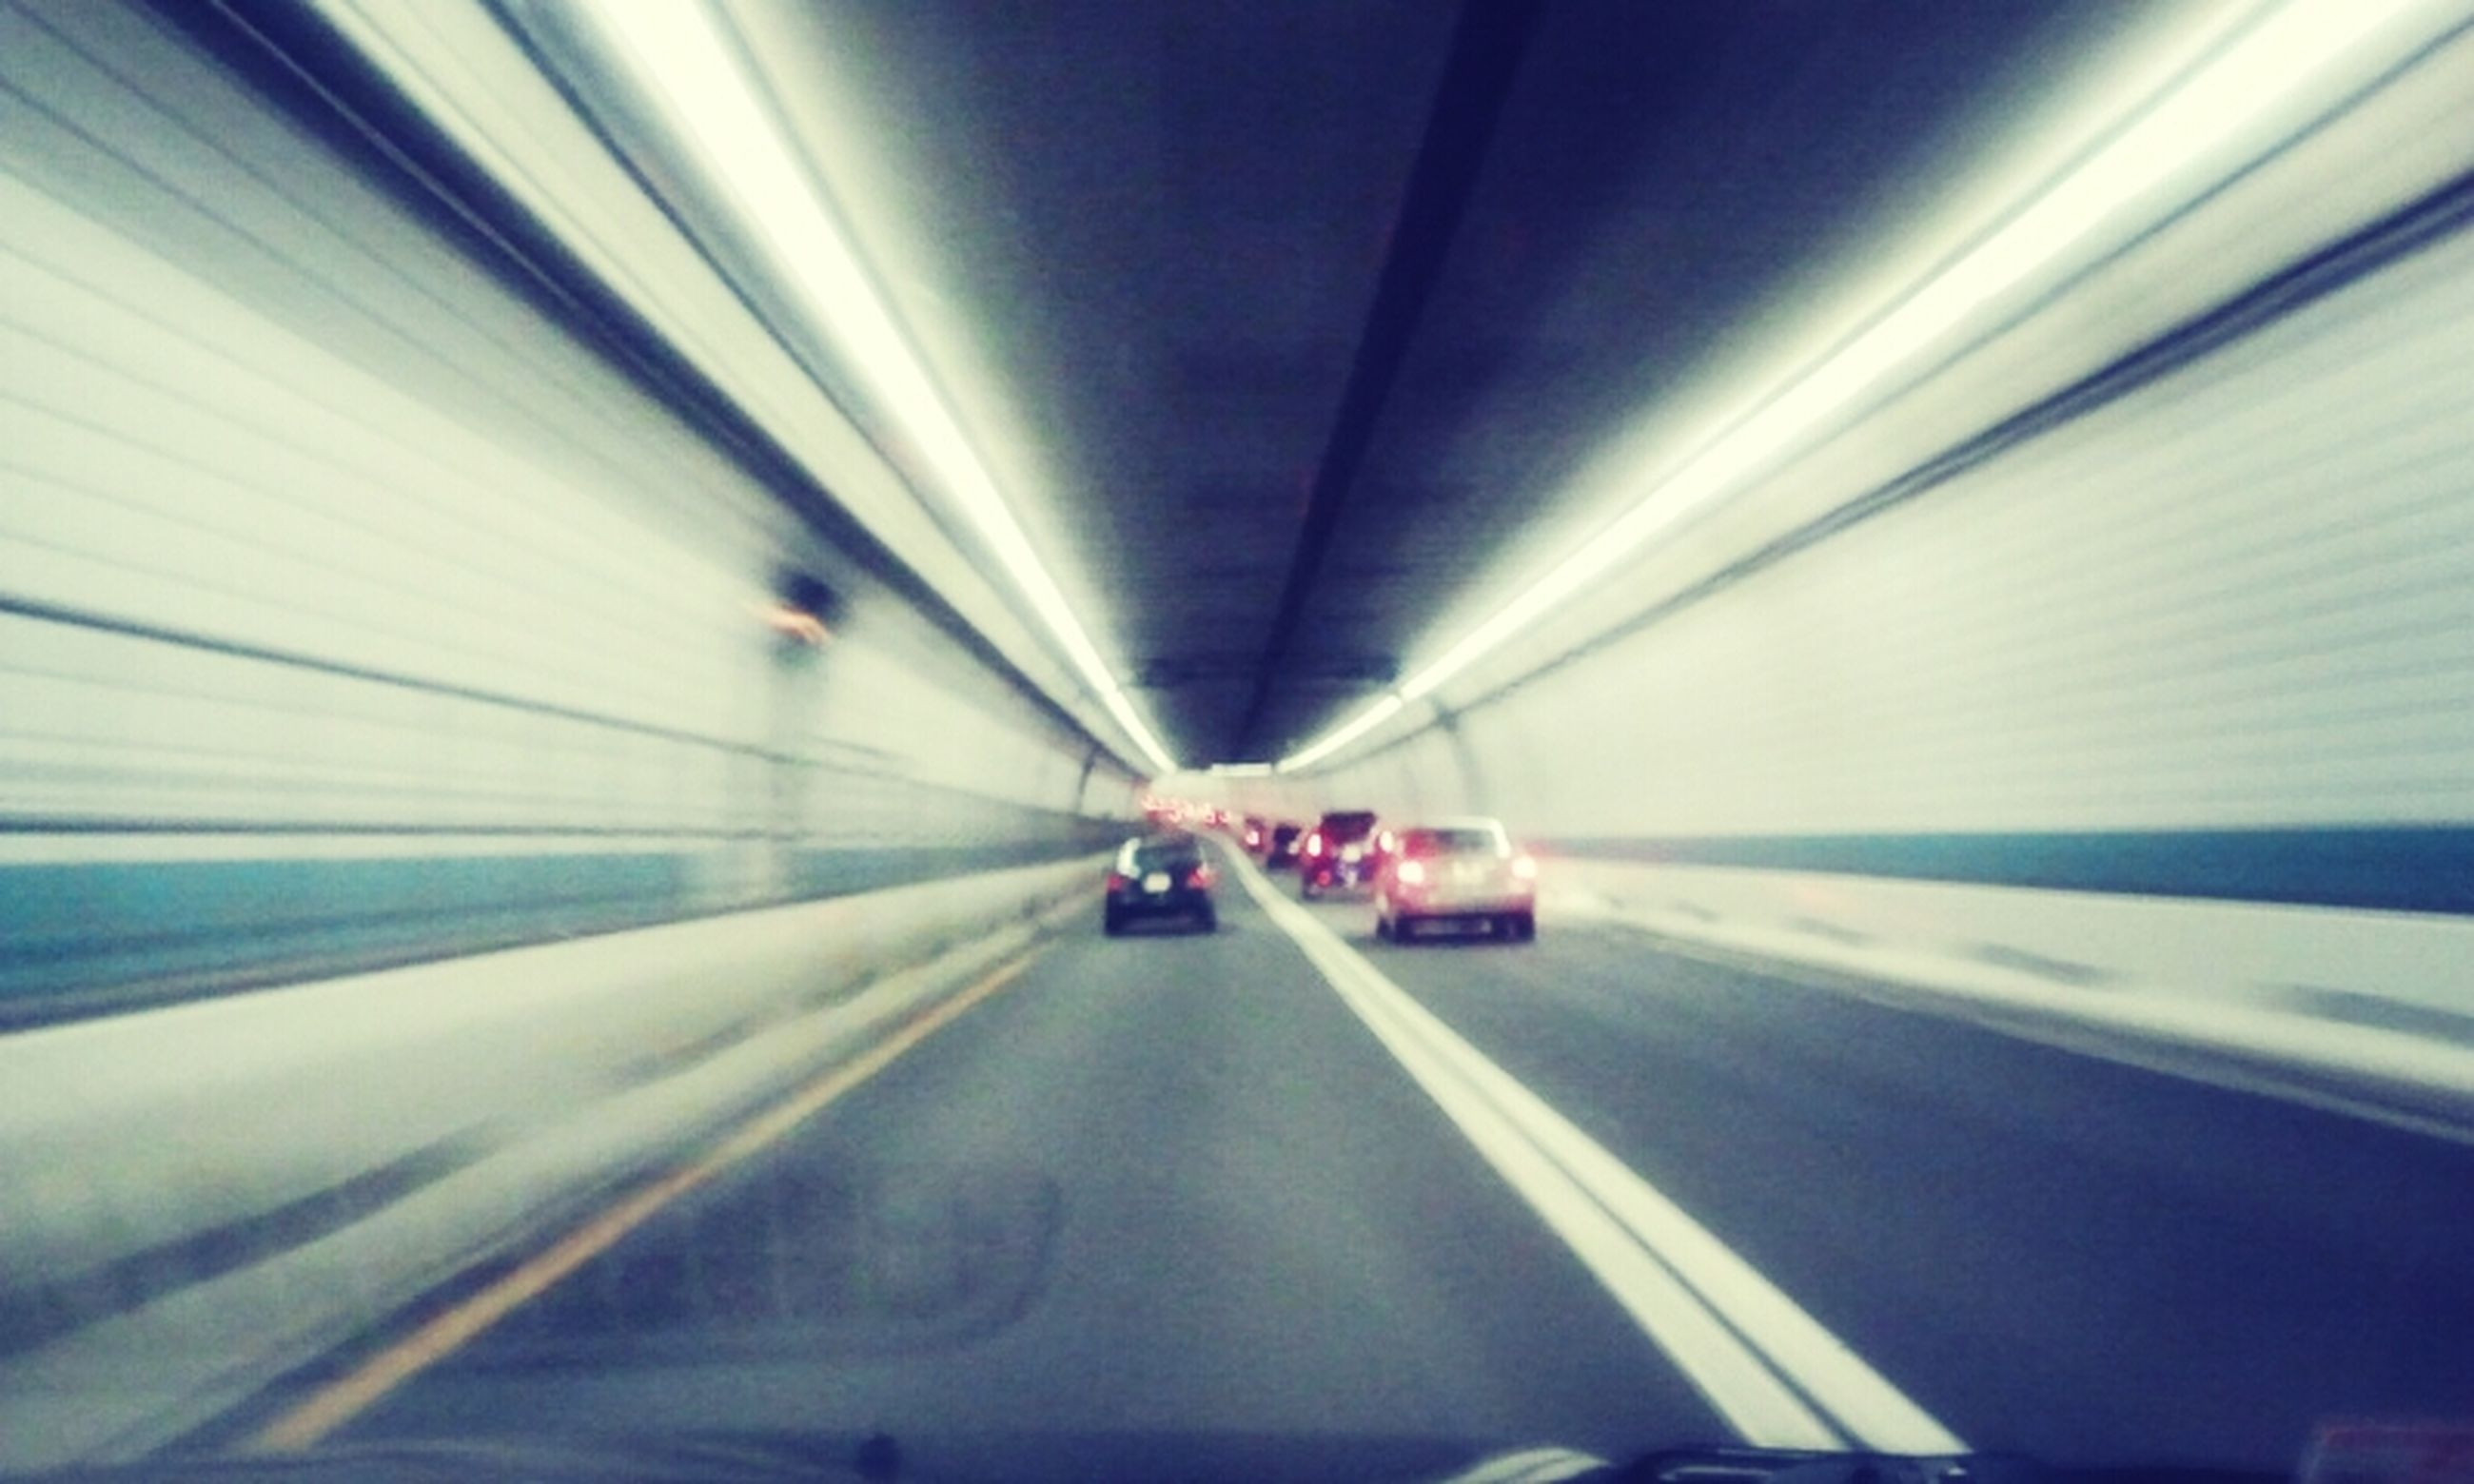 transportation, indoors, the way forward, tunnel, mode of transport, ceiling, illuminated, diminishing perspective, travel, road, vanishing point, on the move, blurred motion, road marking, land vehicle, motion, empty, lighting equipment, subway, subway station